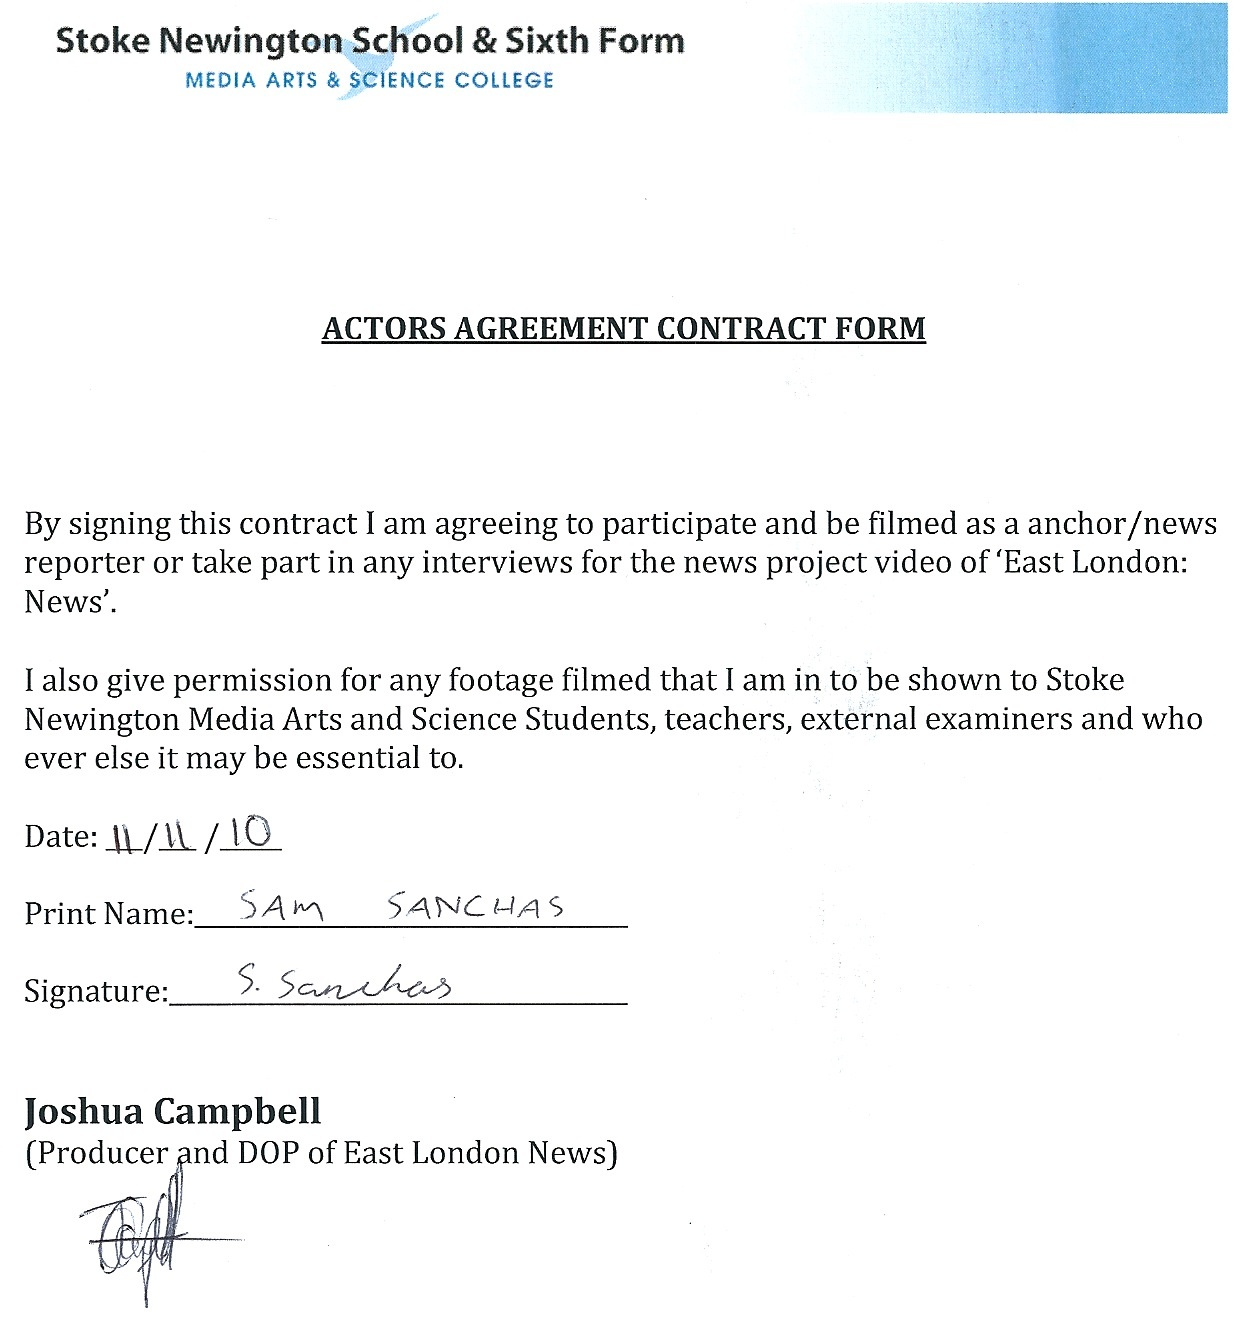 Joshuacampbella2mediaproduction 545 Actors Agreement Contract